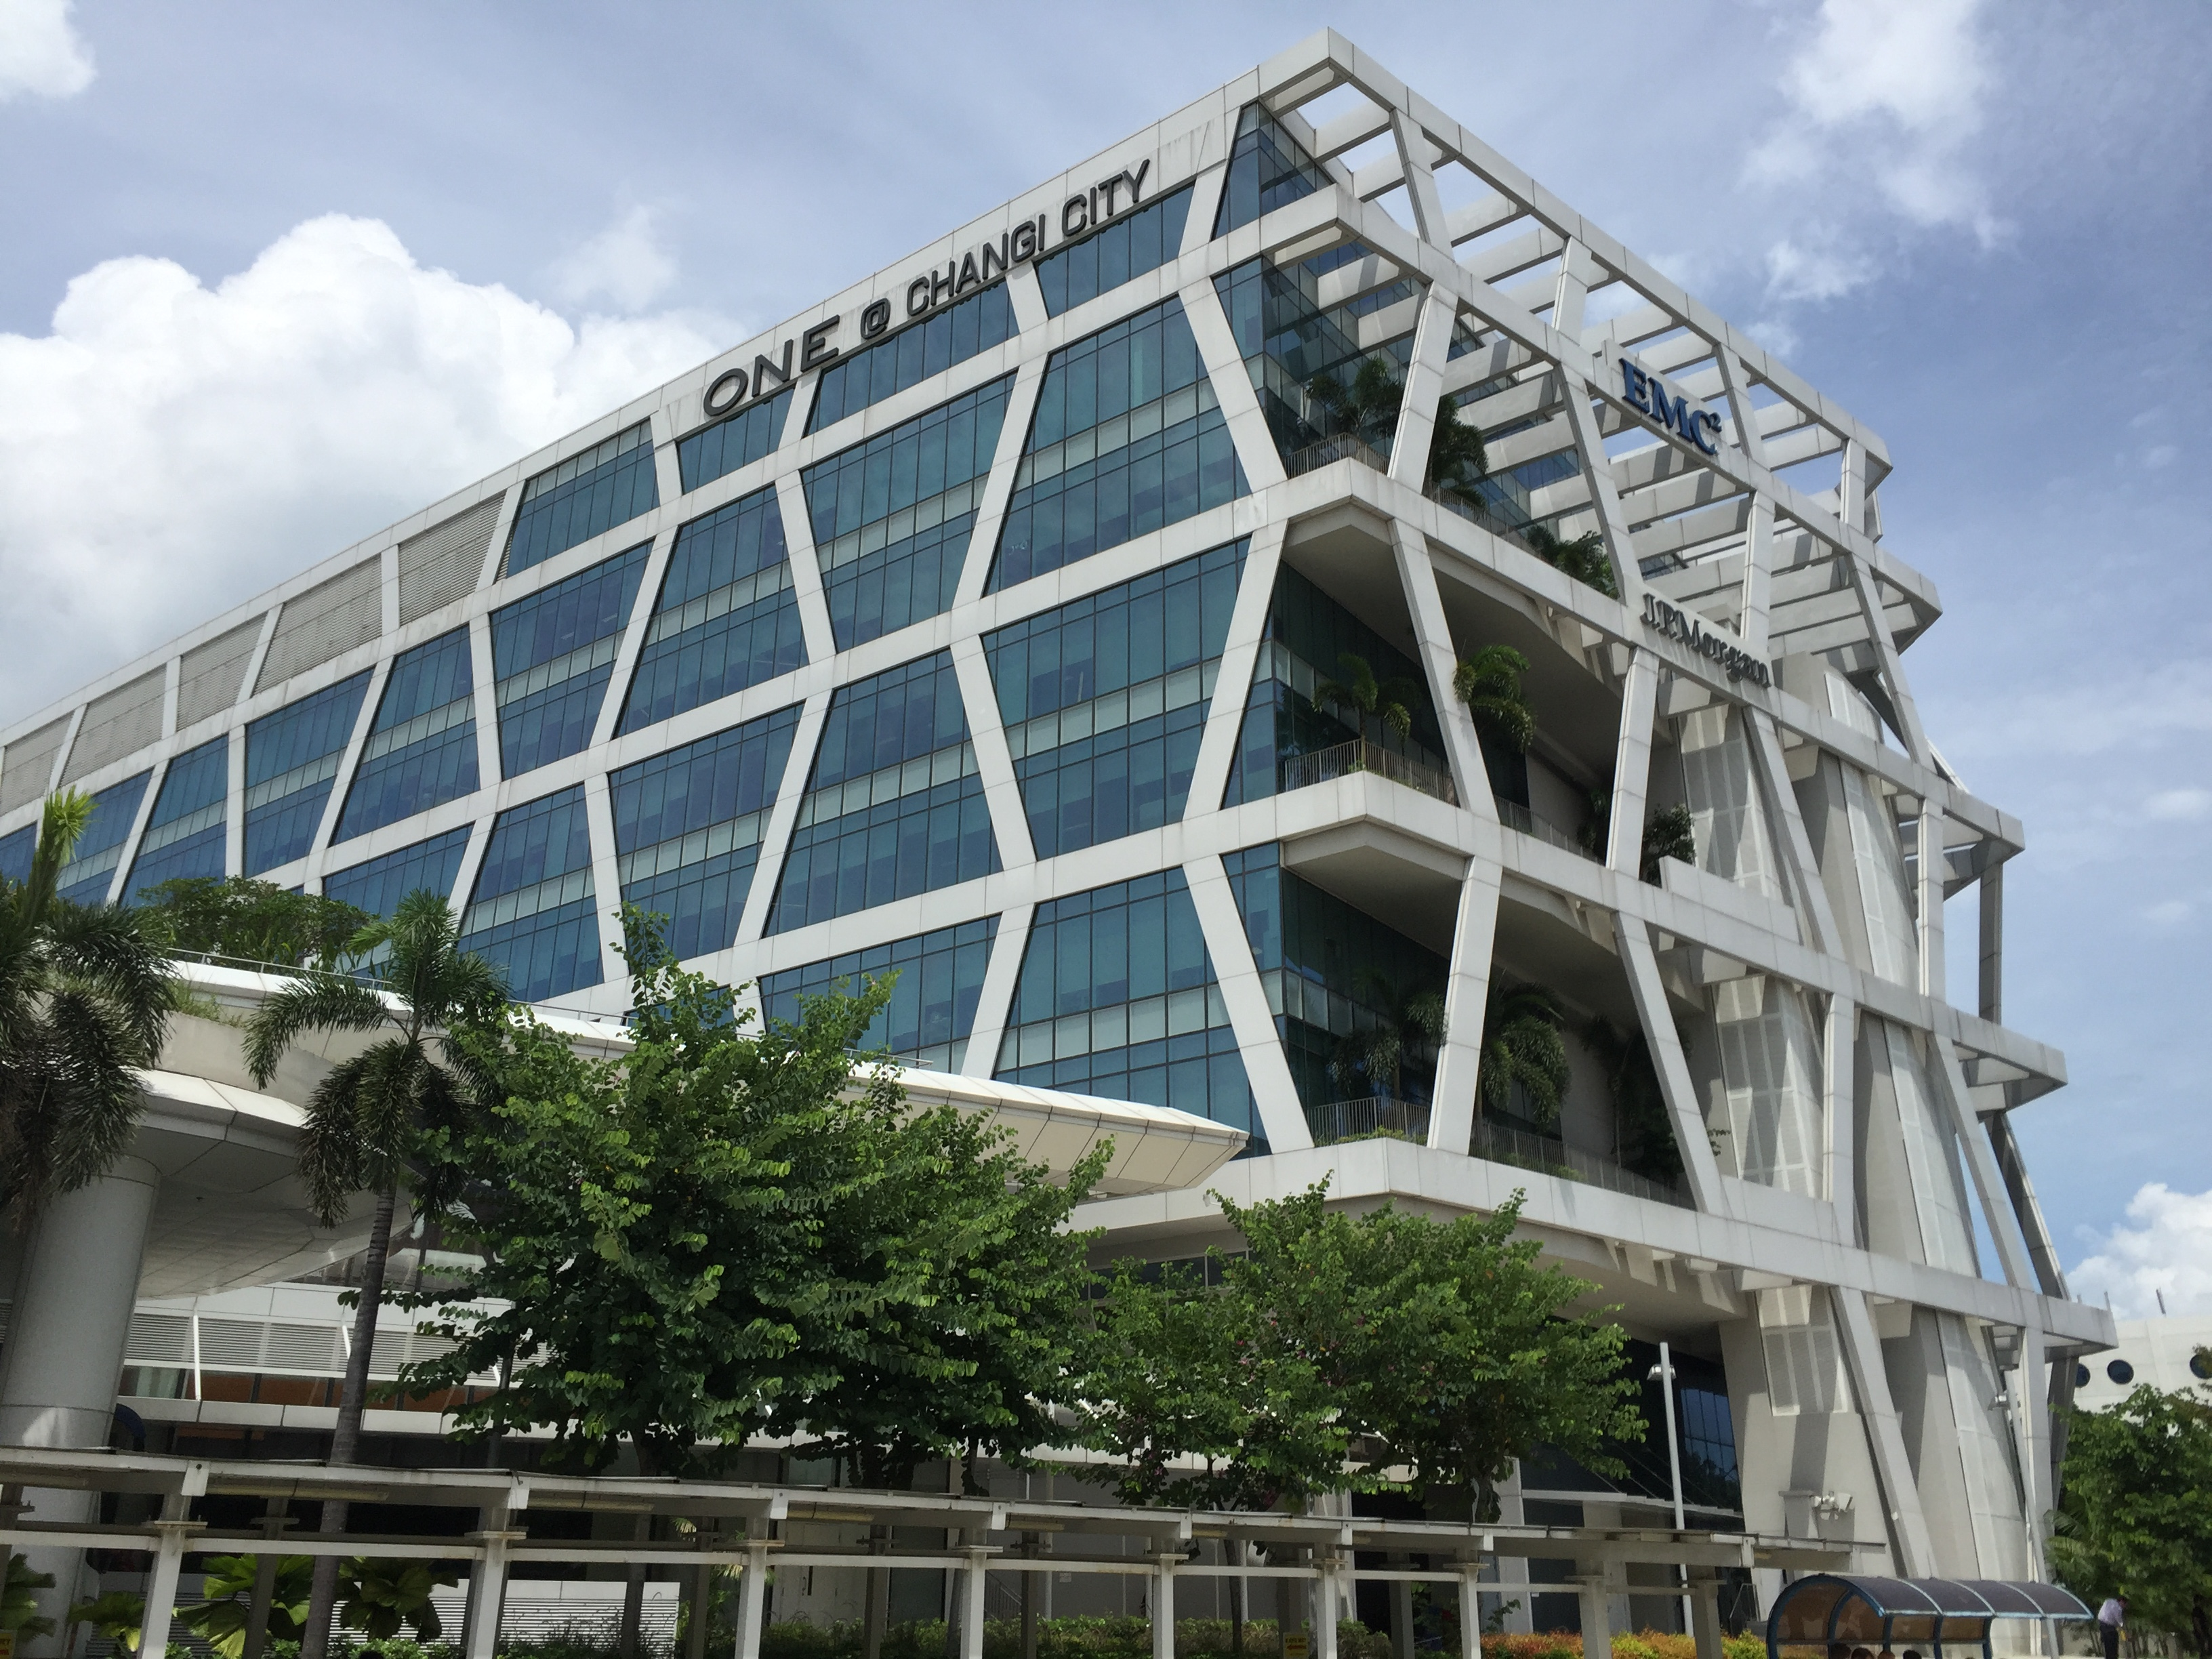 Ascendas REIT's property in Changi Business Park, One@Changi City. (Photo: REITsWeek)